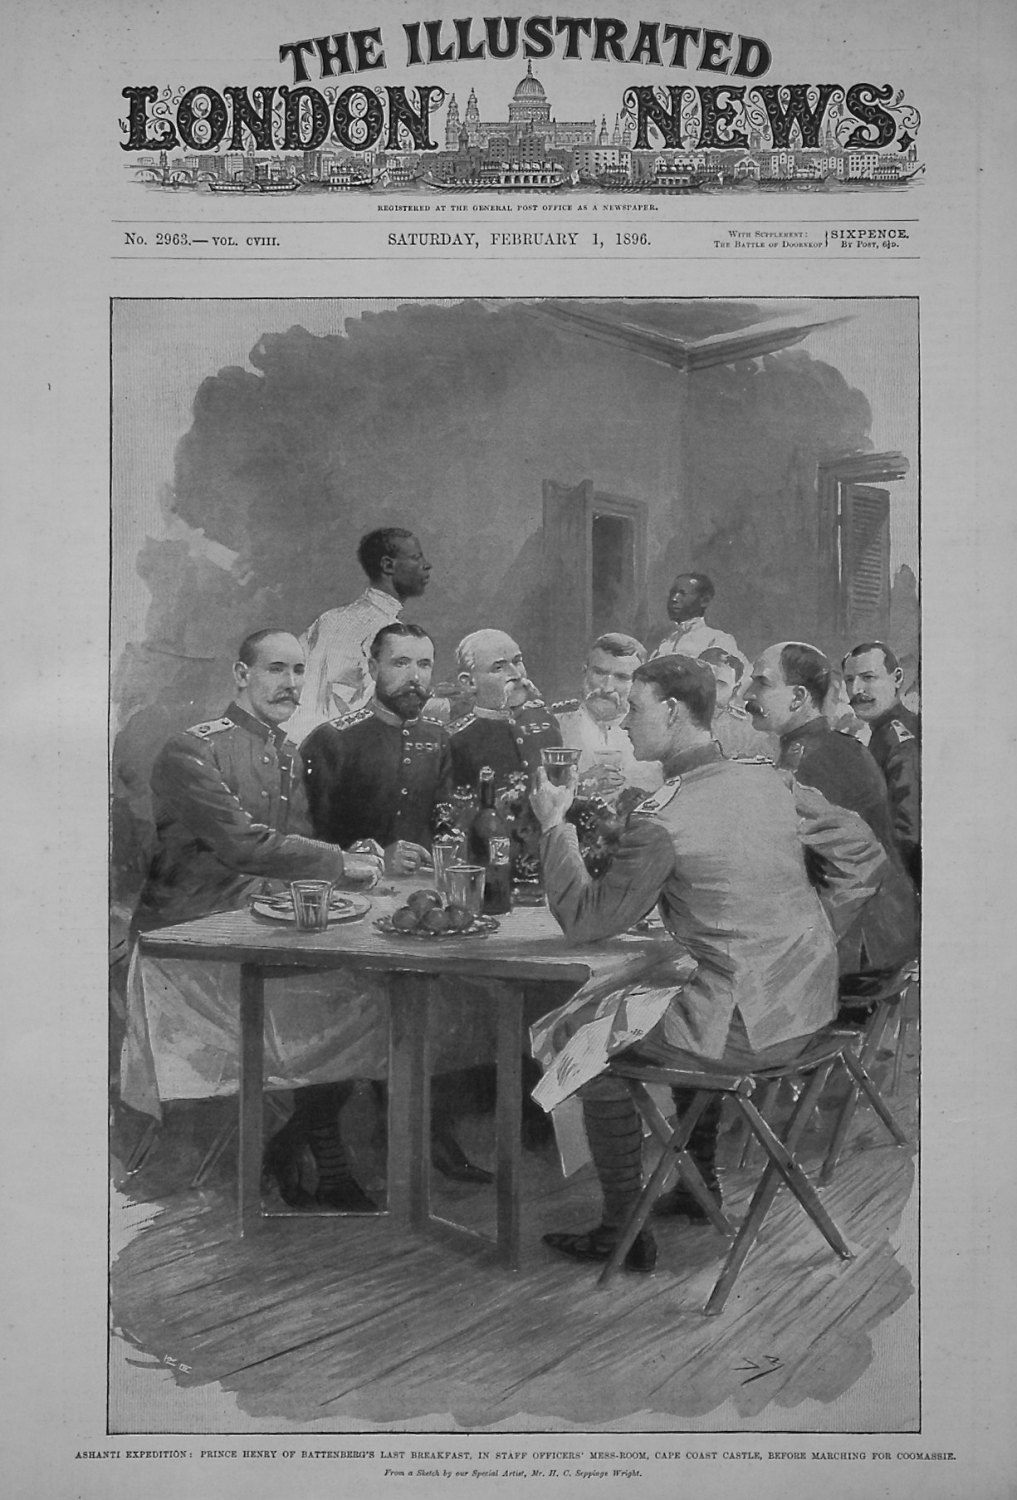 Ashanti Expedition : Prince Henry of Battenberg's Last Breakfast, in Staff